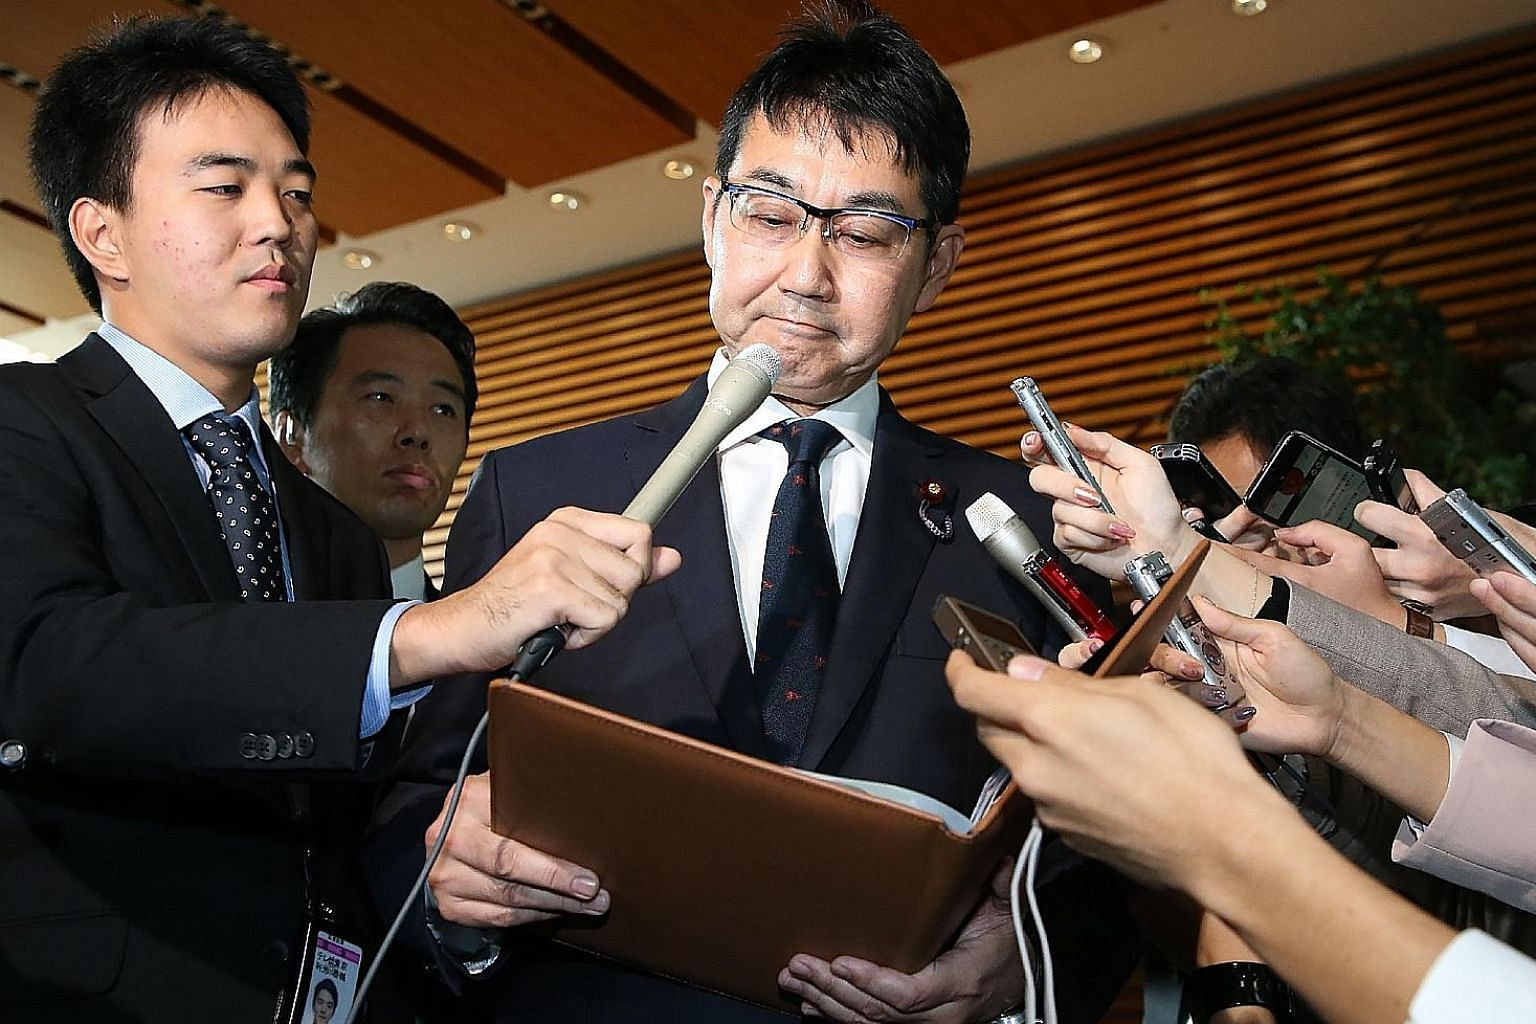 Japan's Justice Minister Katsuyuki Kawai speaking to journalists in Tokyo yesterday after submitting his resignation. He was alleged to have given potatoes, corn and mangoes to voters.